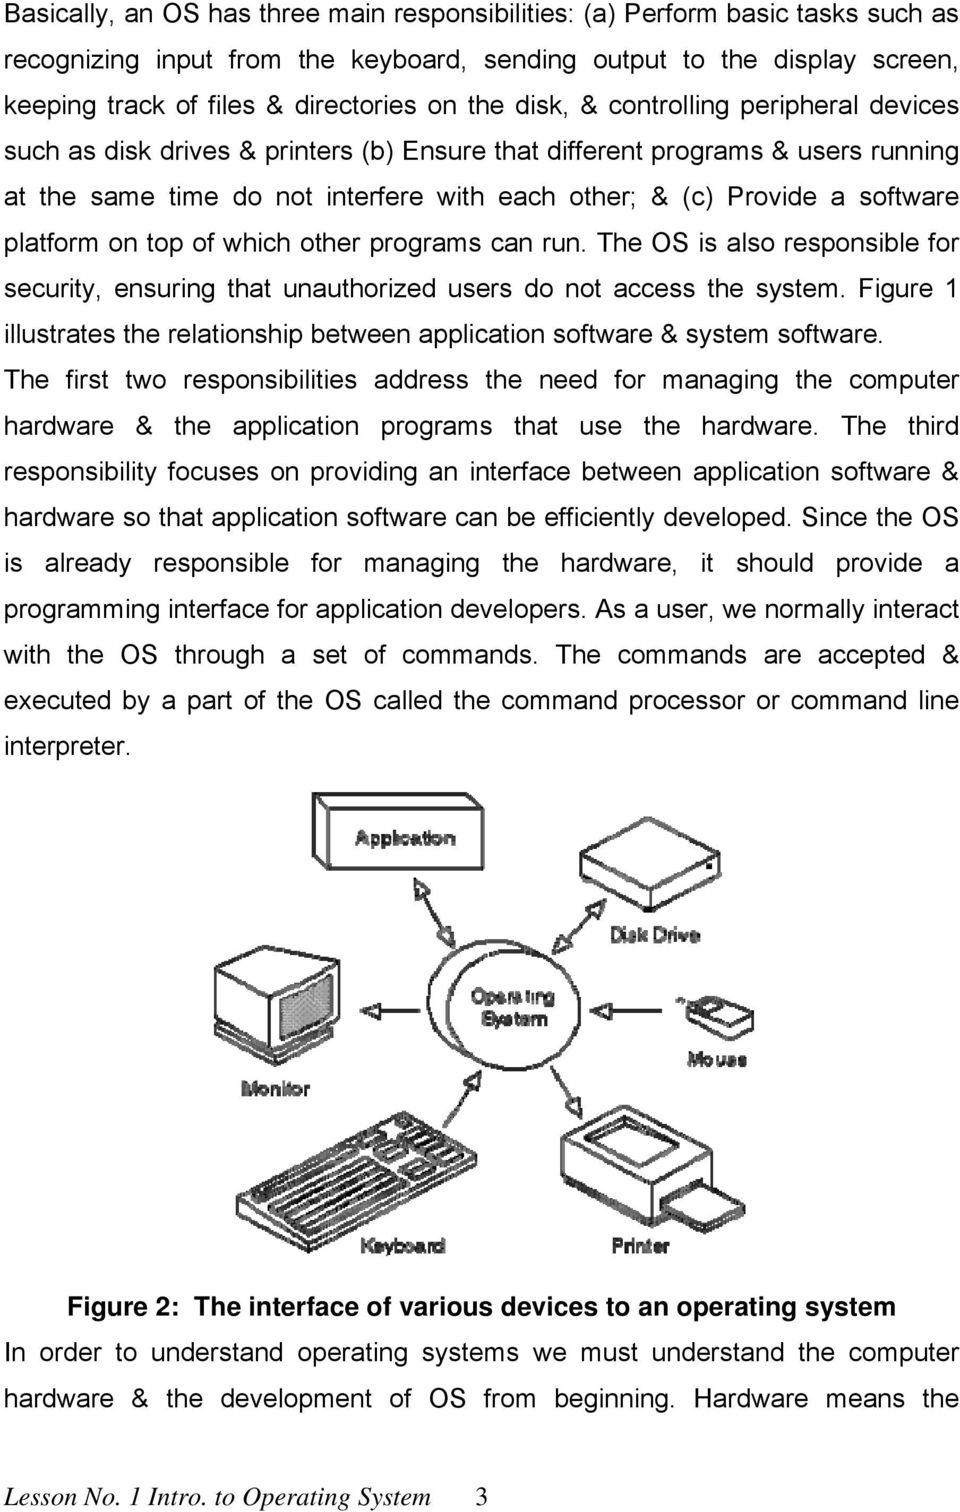 software platform on top of which other programs can run. The OS is also responsible for security, ensuring that unauthorized users do not access the system.